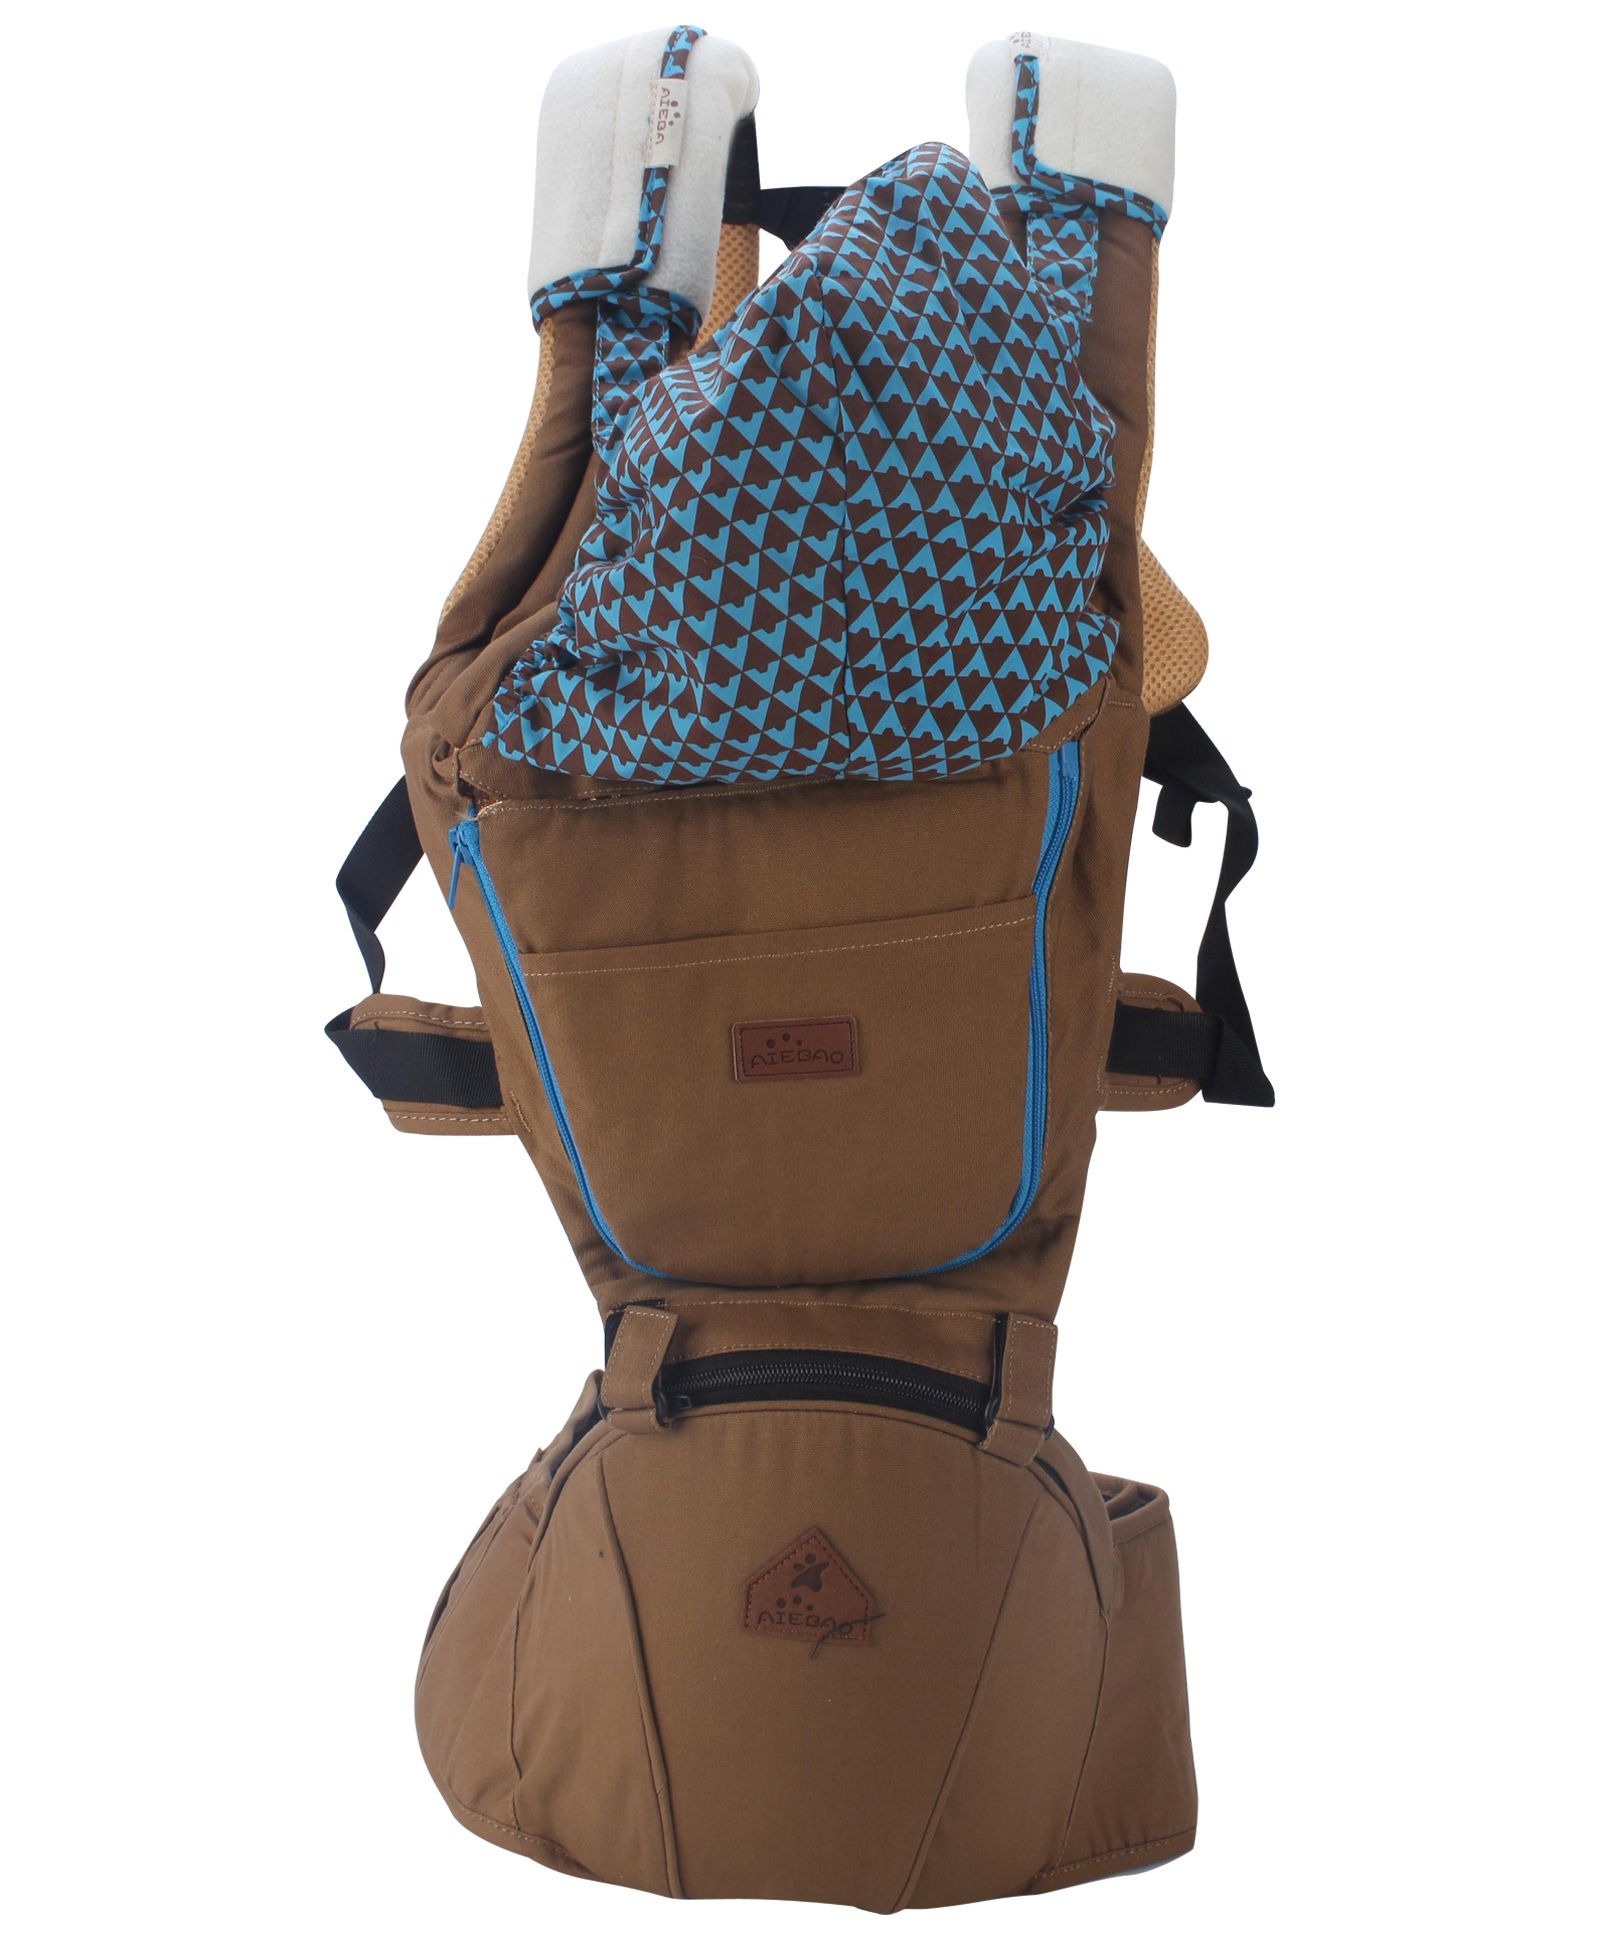 3 Way Baby Carrier - Brown